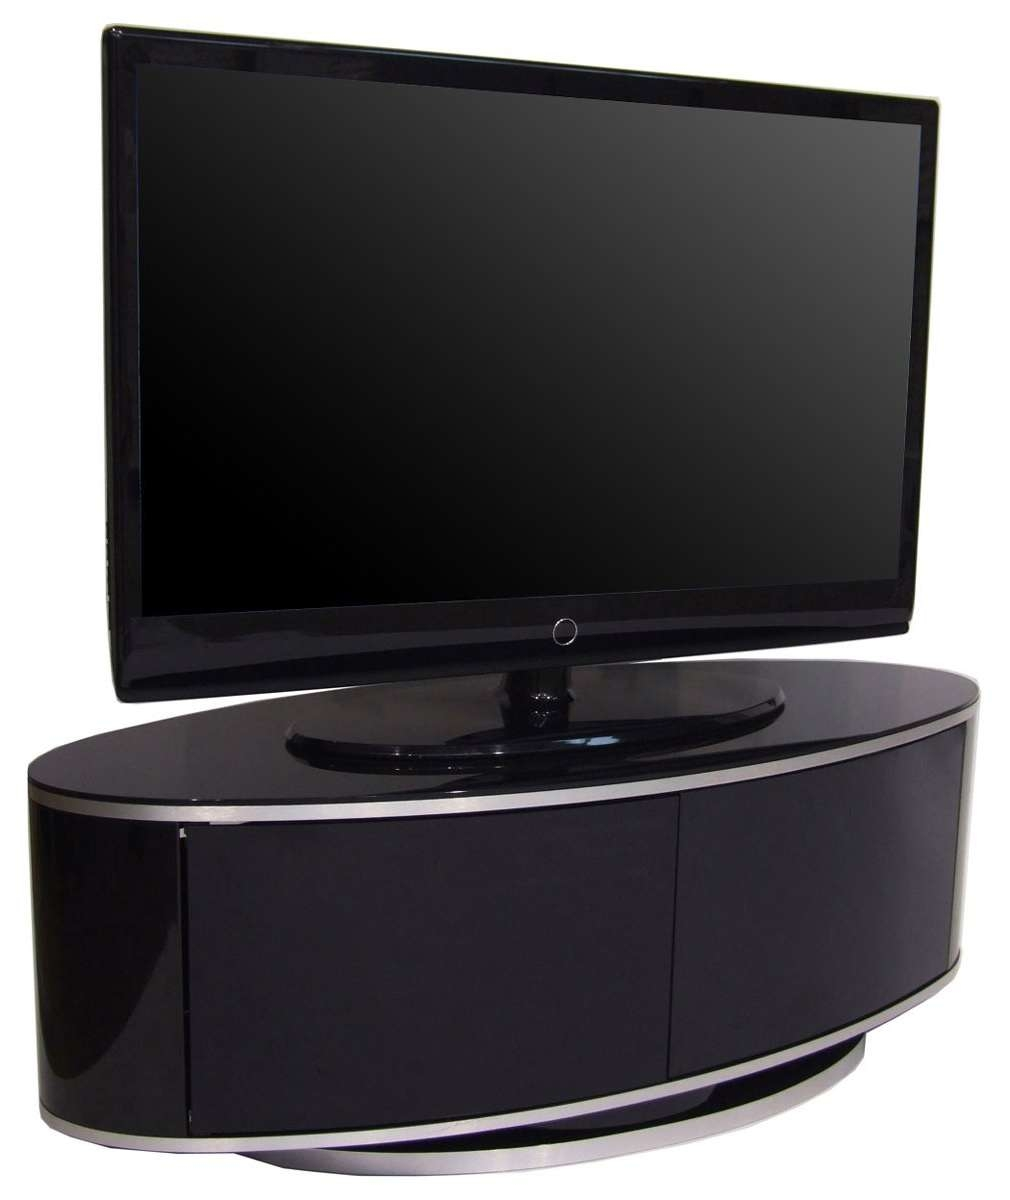 Luna High Gloss Black Oval Tv Cabinet Throughout Shiny Black Tv Stands (View 7 of 15)